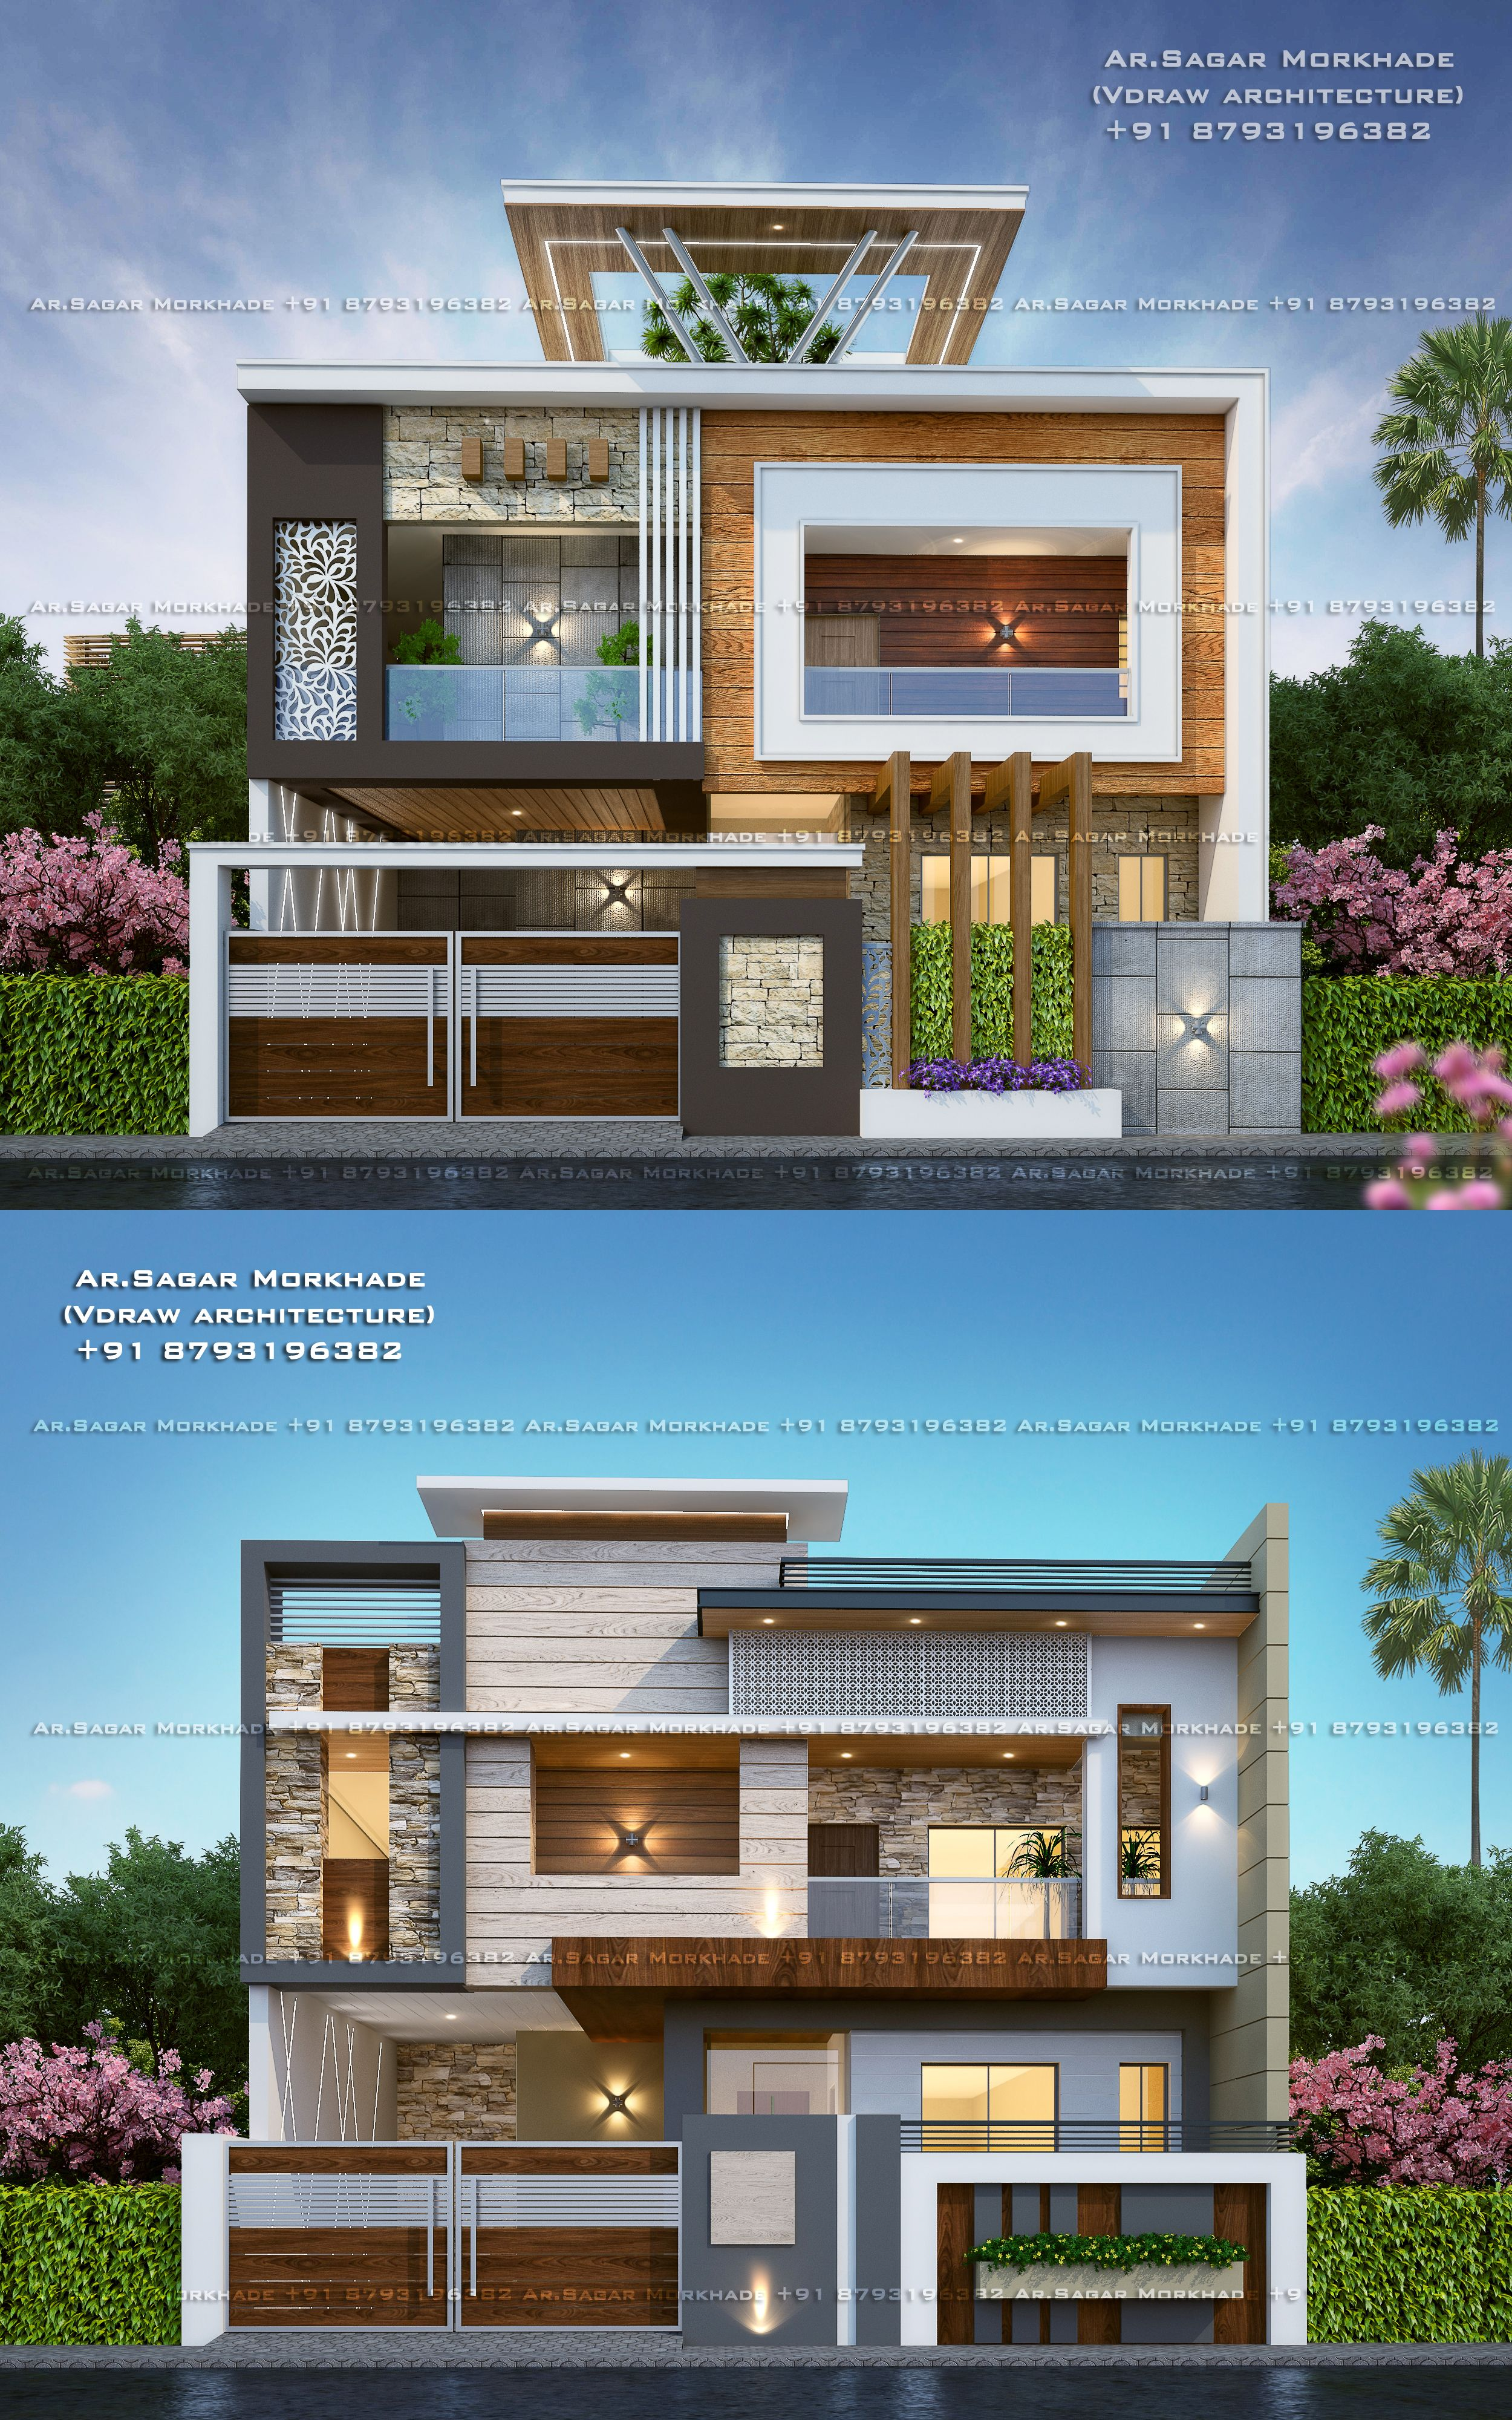 Contemporary Modern Residential House Bungalow Modern Architecture Exterior By A Modern Exterior House Designs House Design Pictures Dream House Exterior